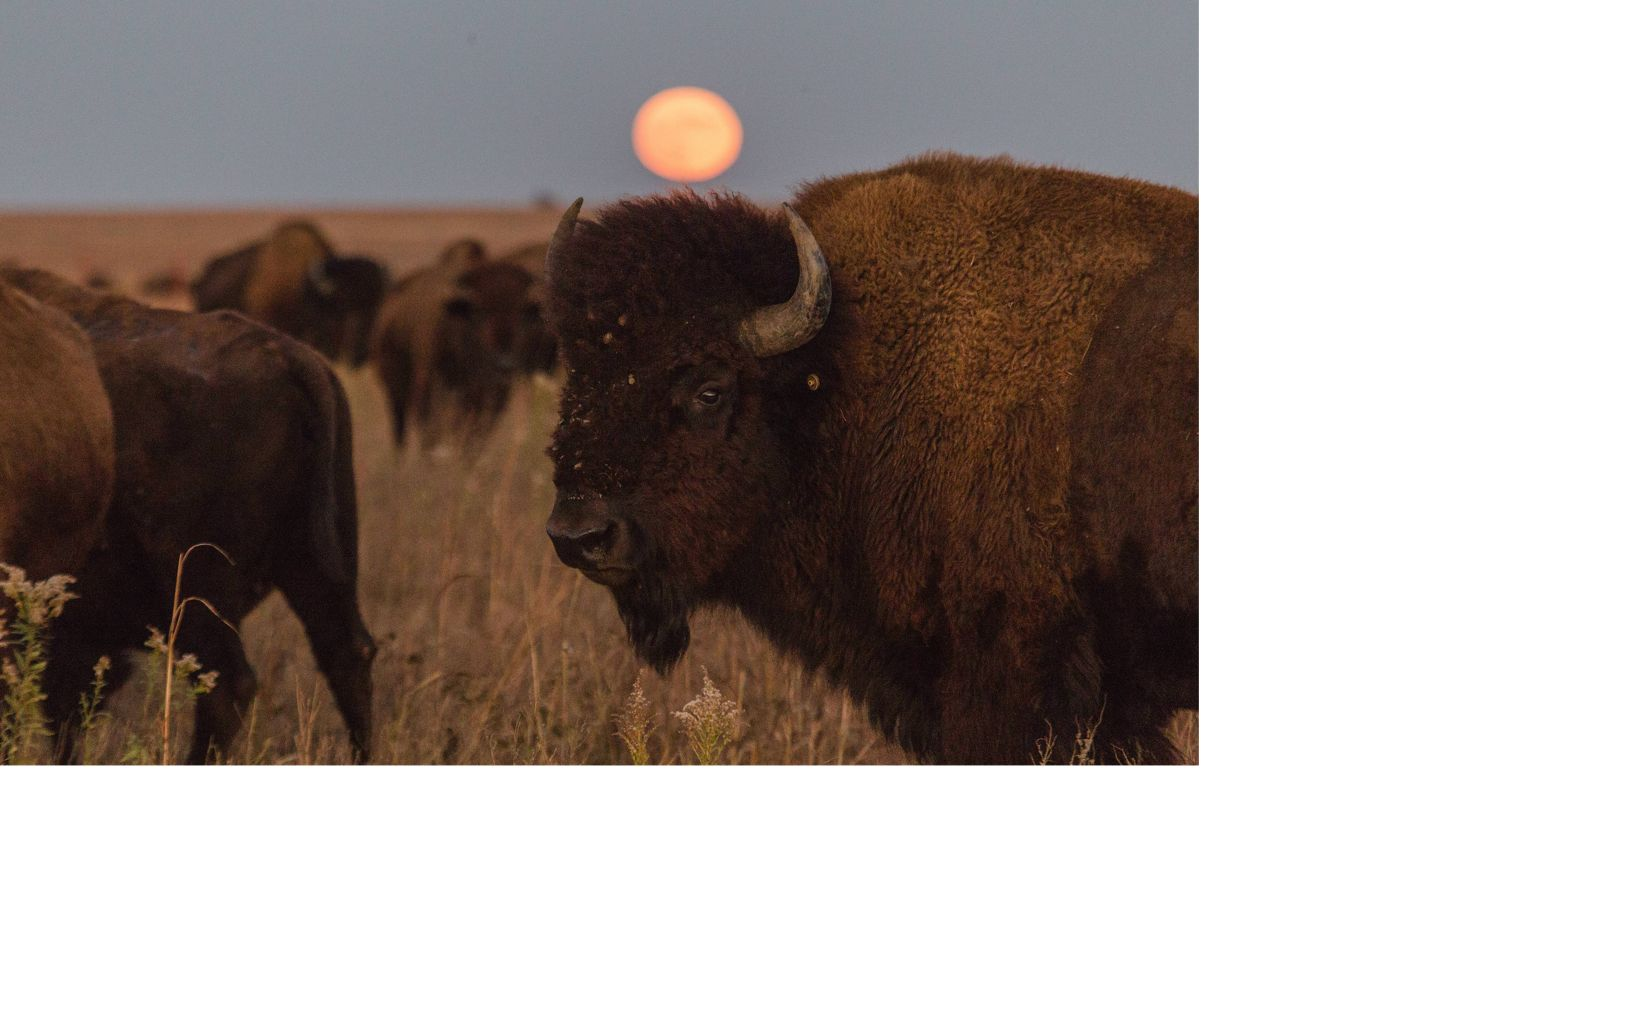 a full harvest moon rises over the herd at Tallgrass Prairie Preserve, Pawhuska, Oklahoma.